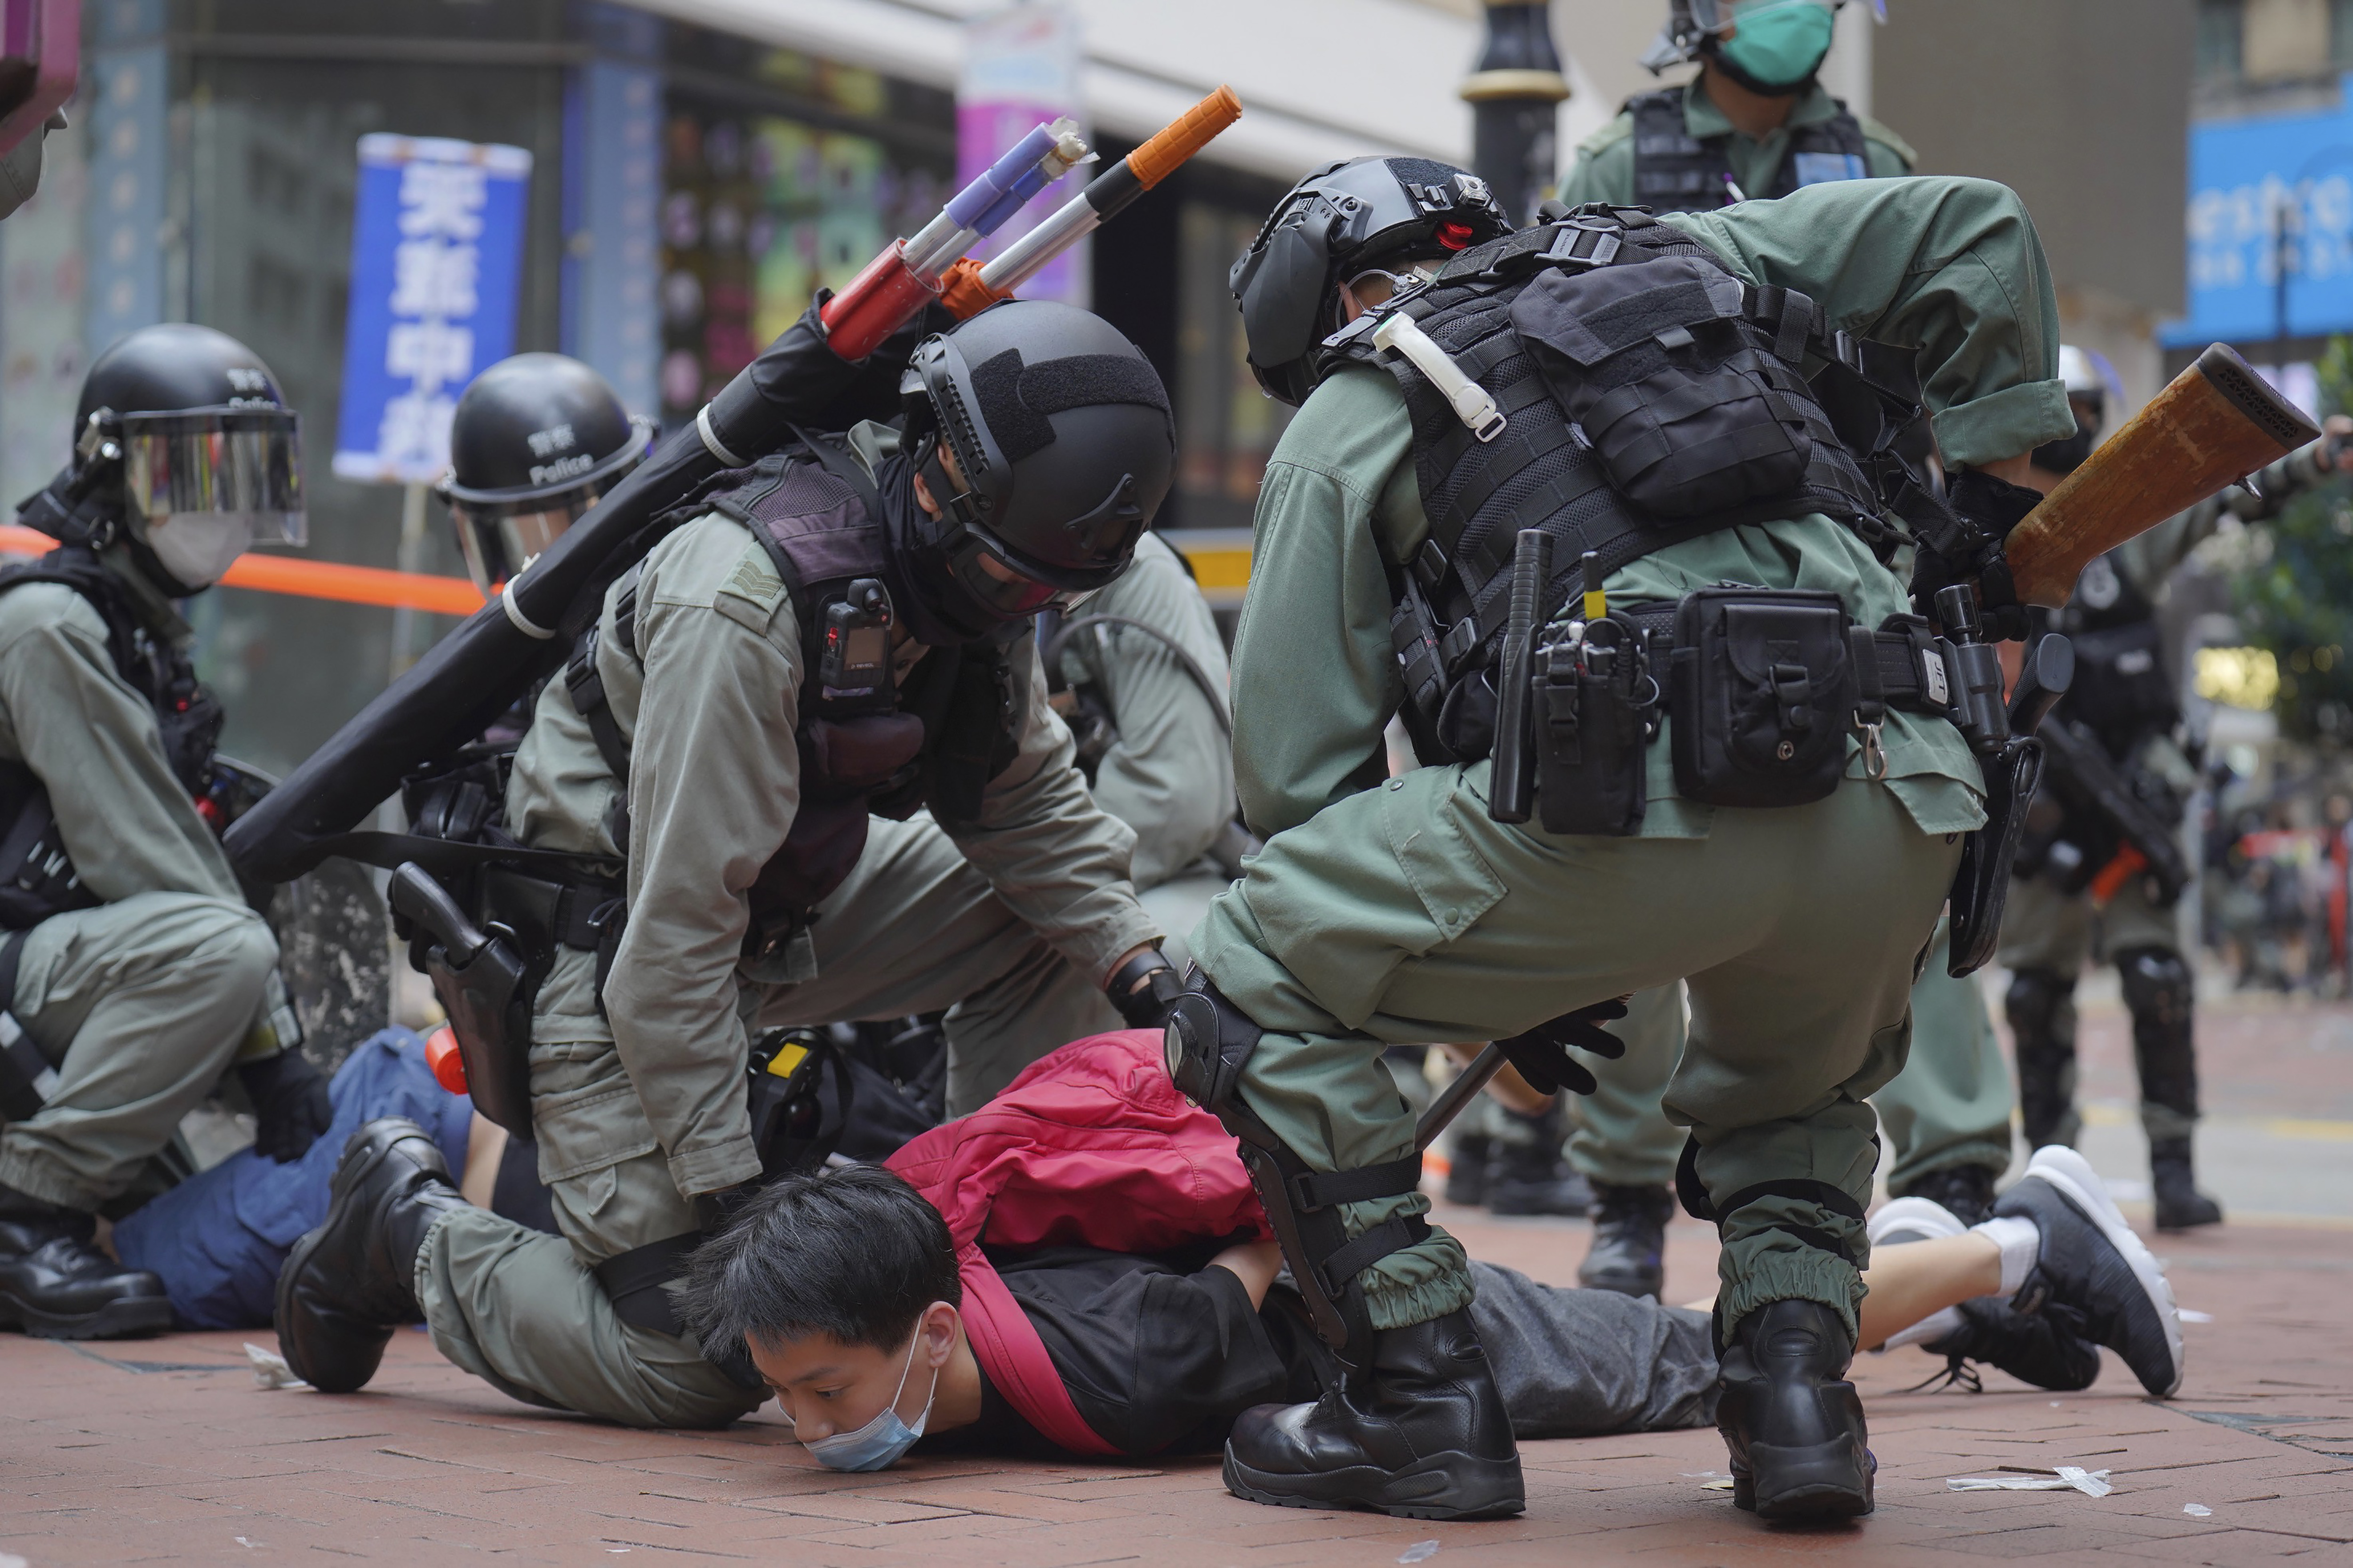 Riot police detain a protester during an anti-China demonstration in Hong Kong